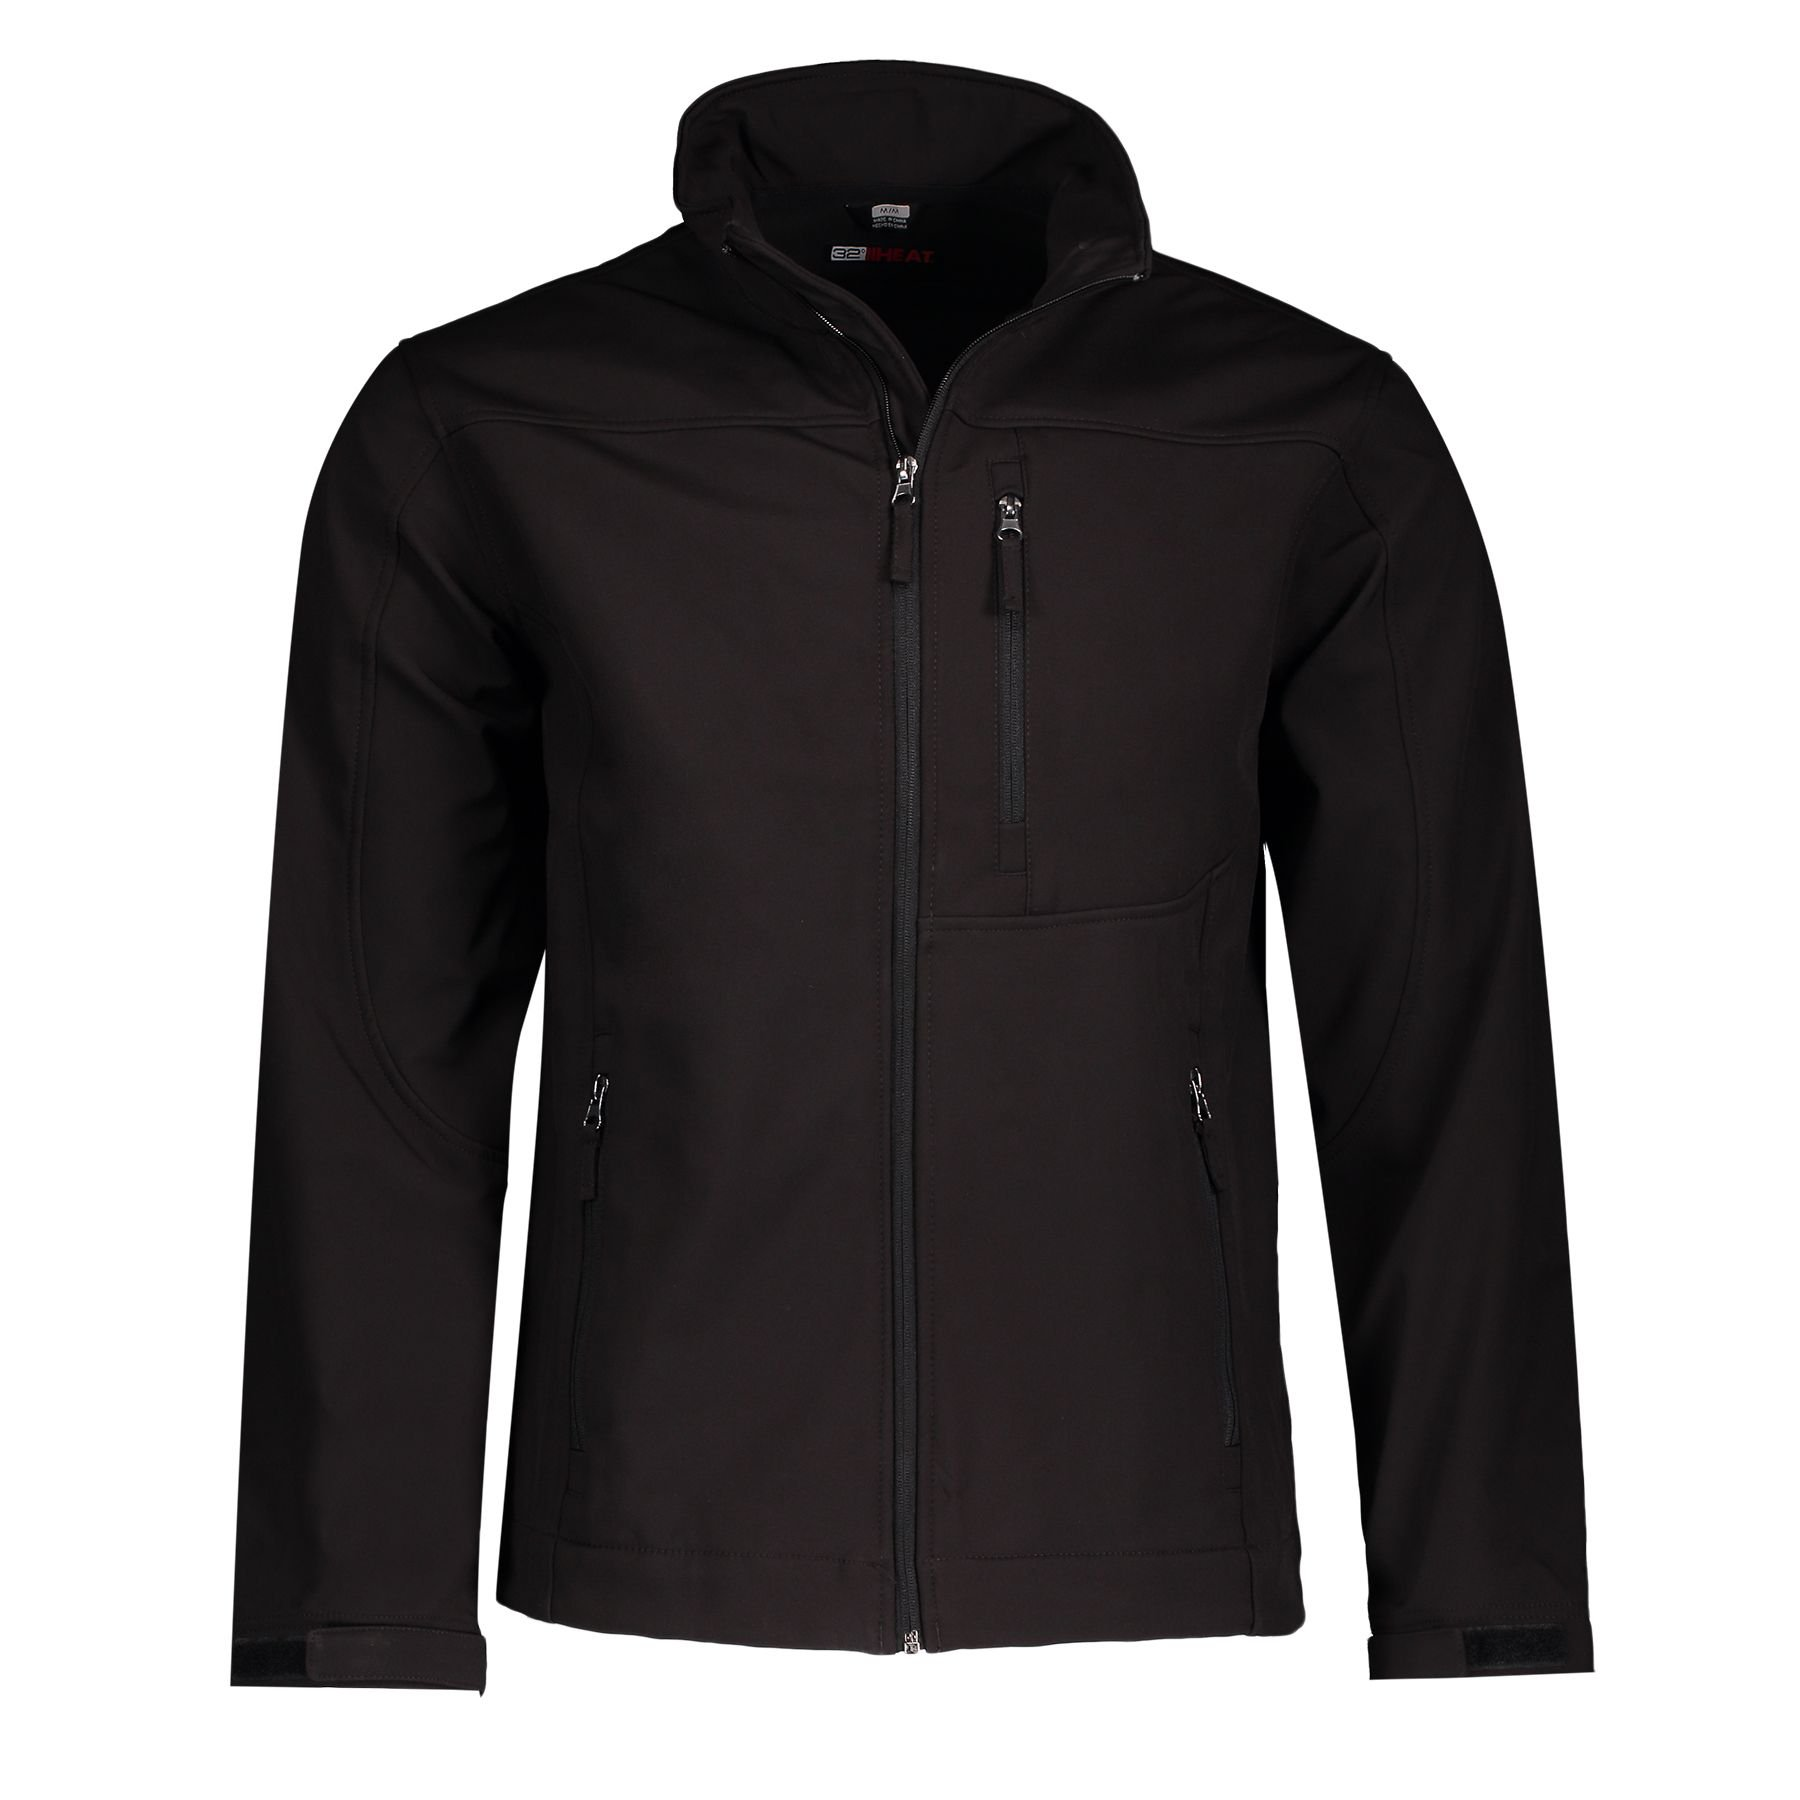 32 DEGREES Men's Softshell Jacket, Black, Small by 32 DEGREES